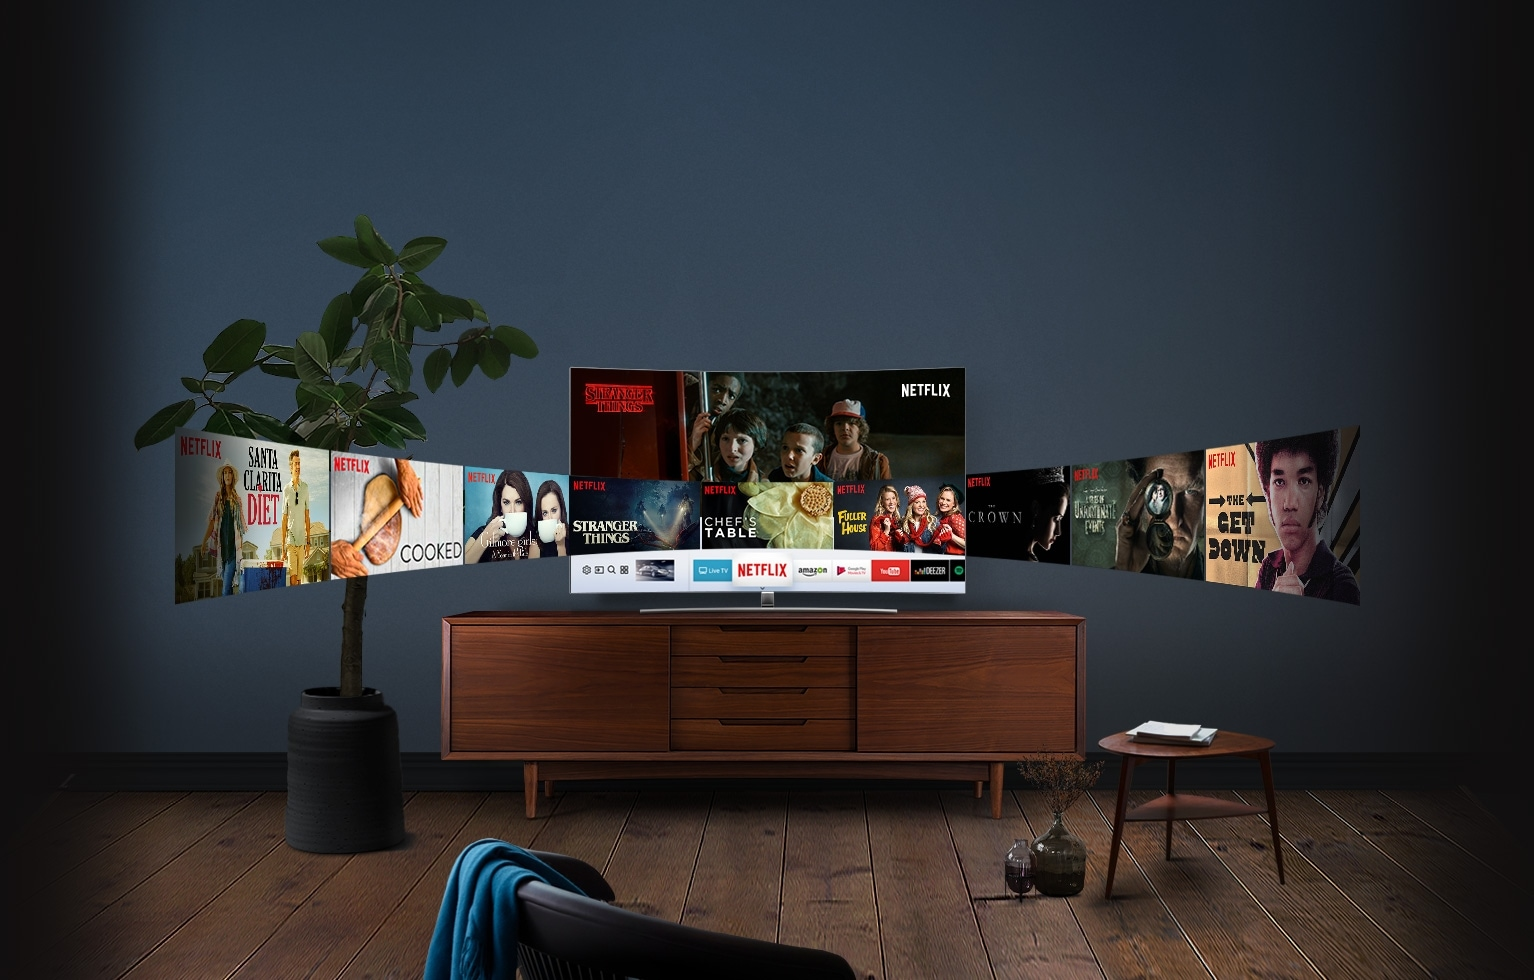 Curved screen QLED TV is placed on the wooden shelf, and various NETFLIX contents on the screen are displayed like a panorama on the screen.